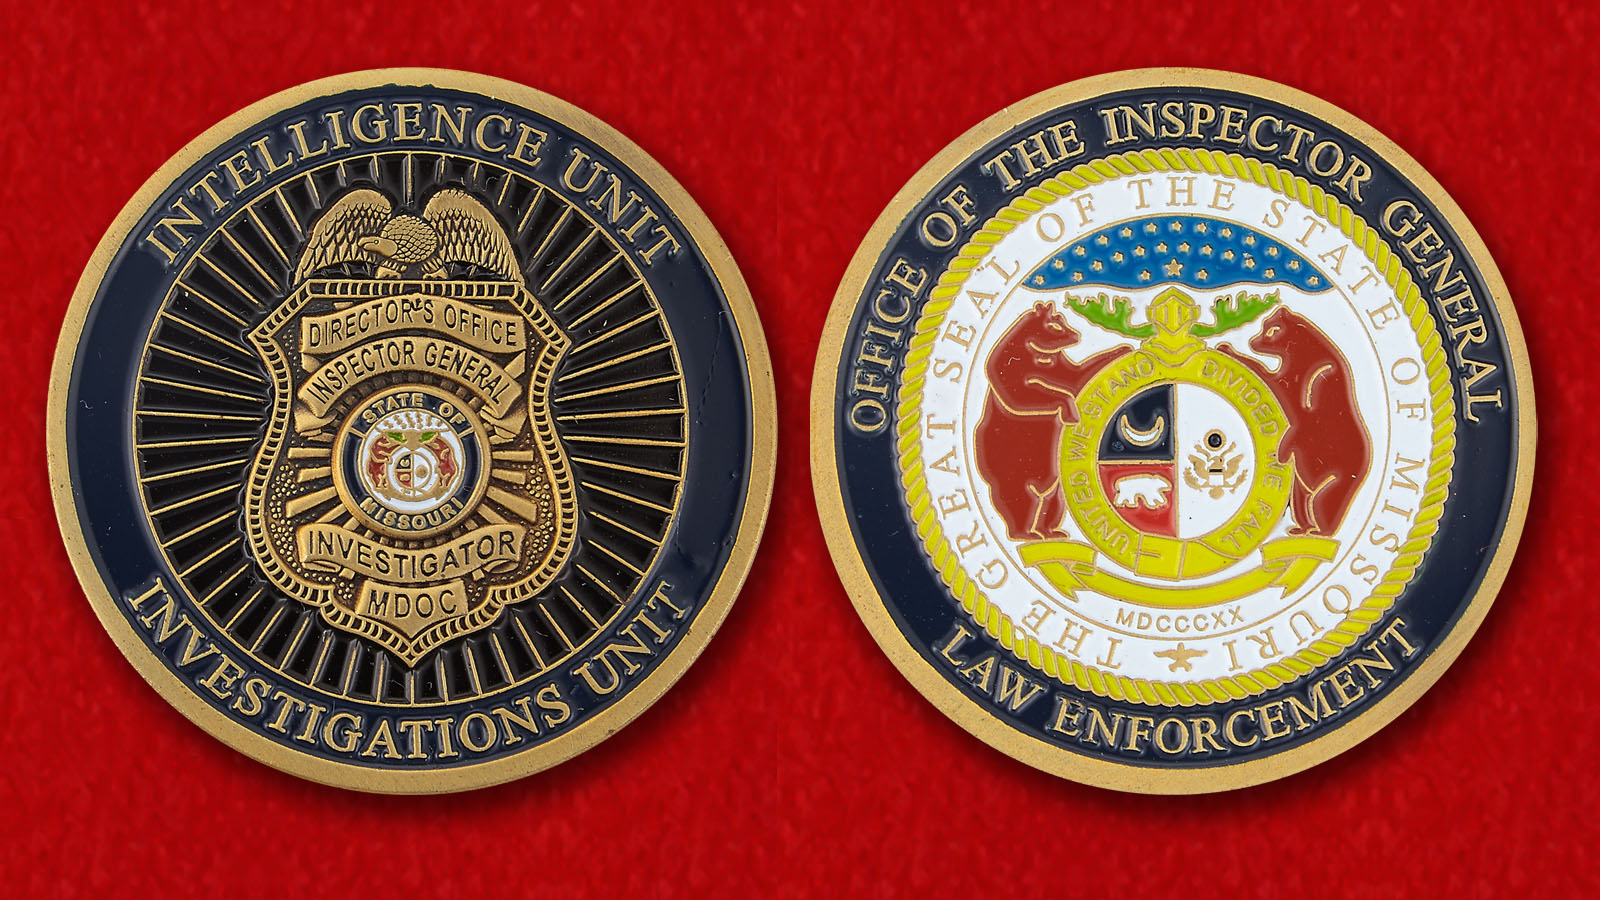 The Inspector General Enforcement Missouri Challenge Coin - obverse and reverse